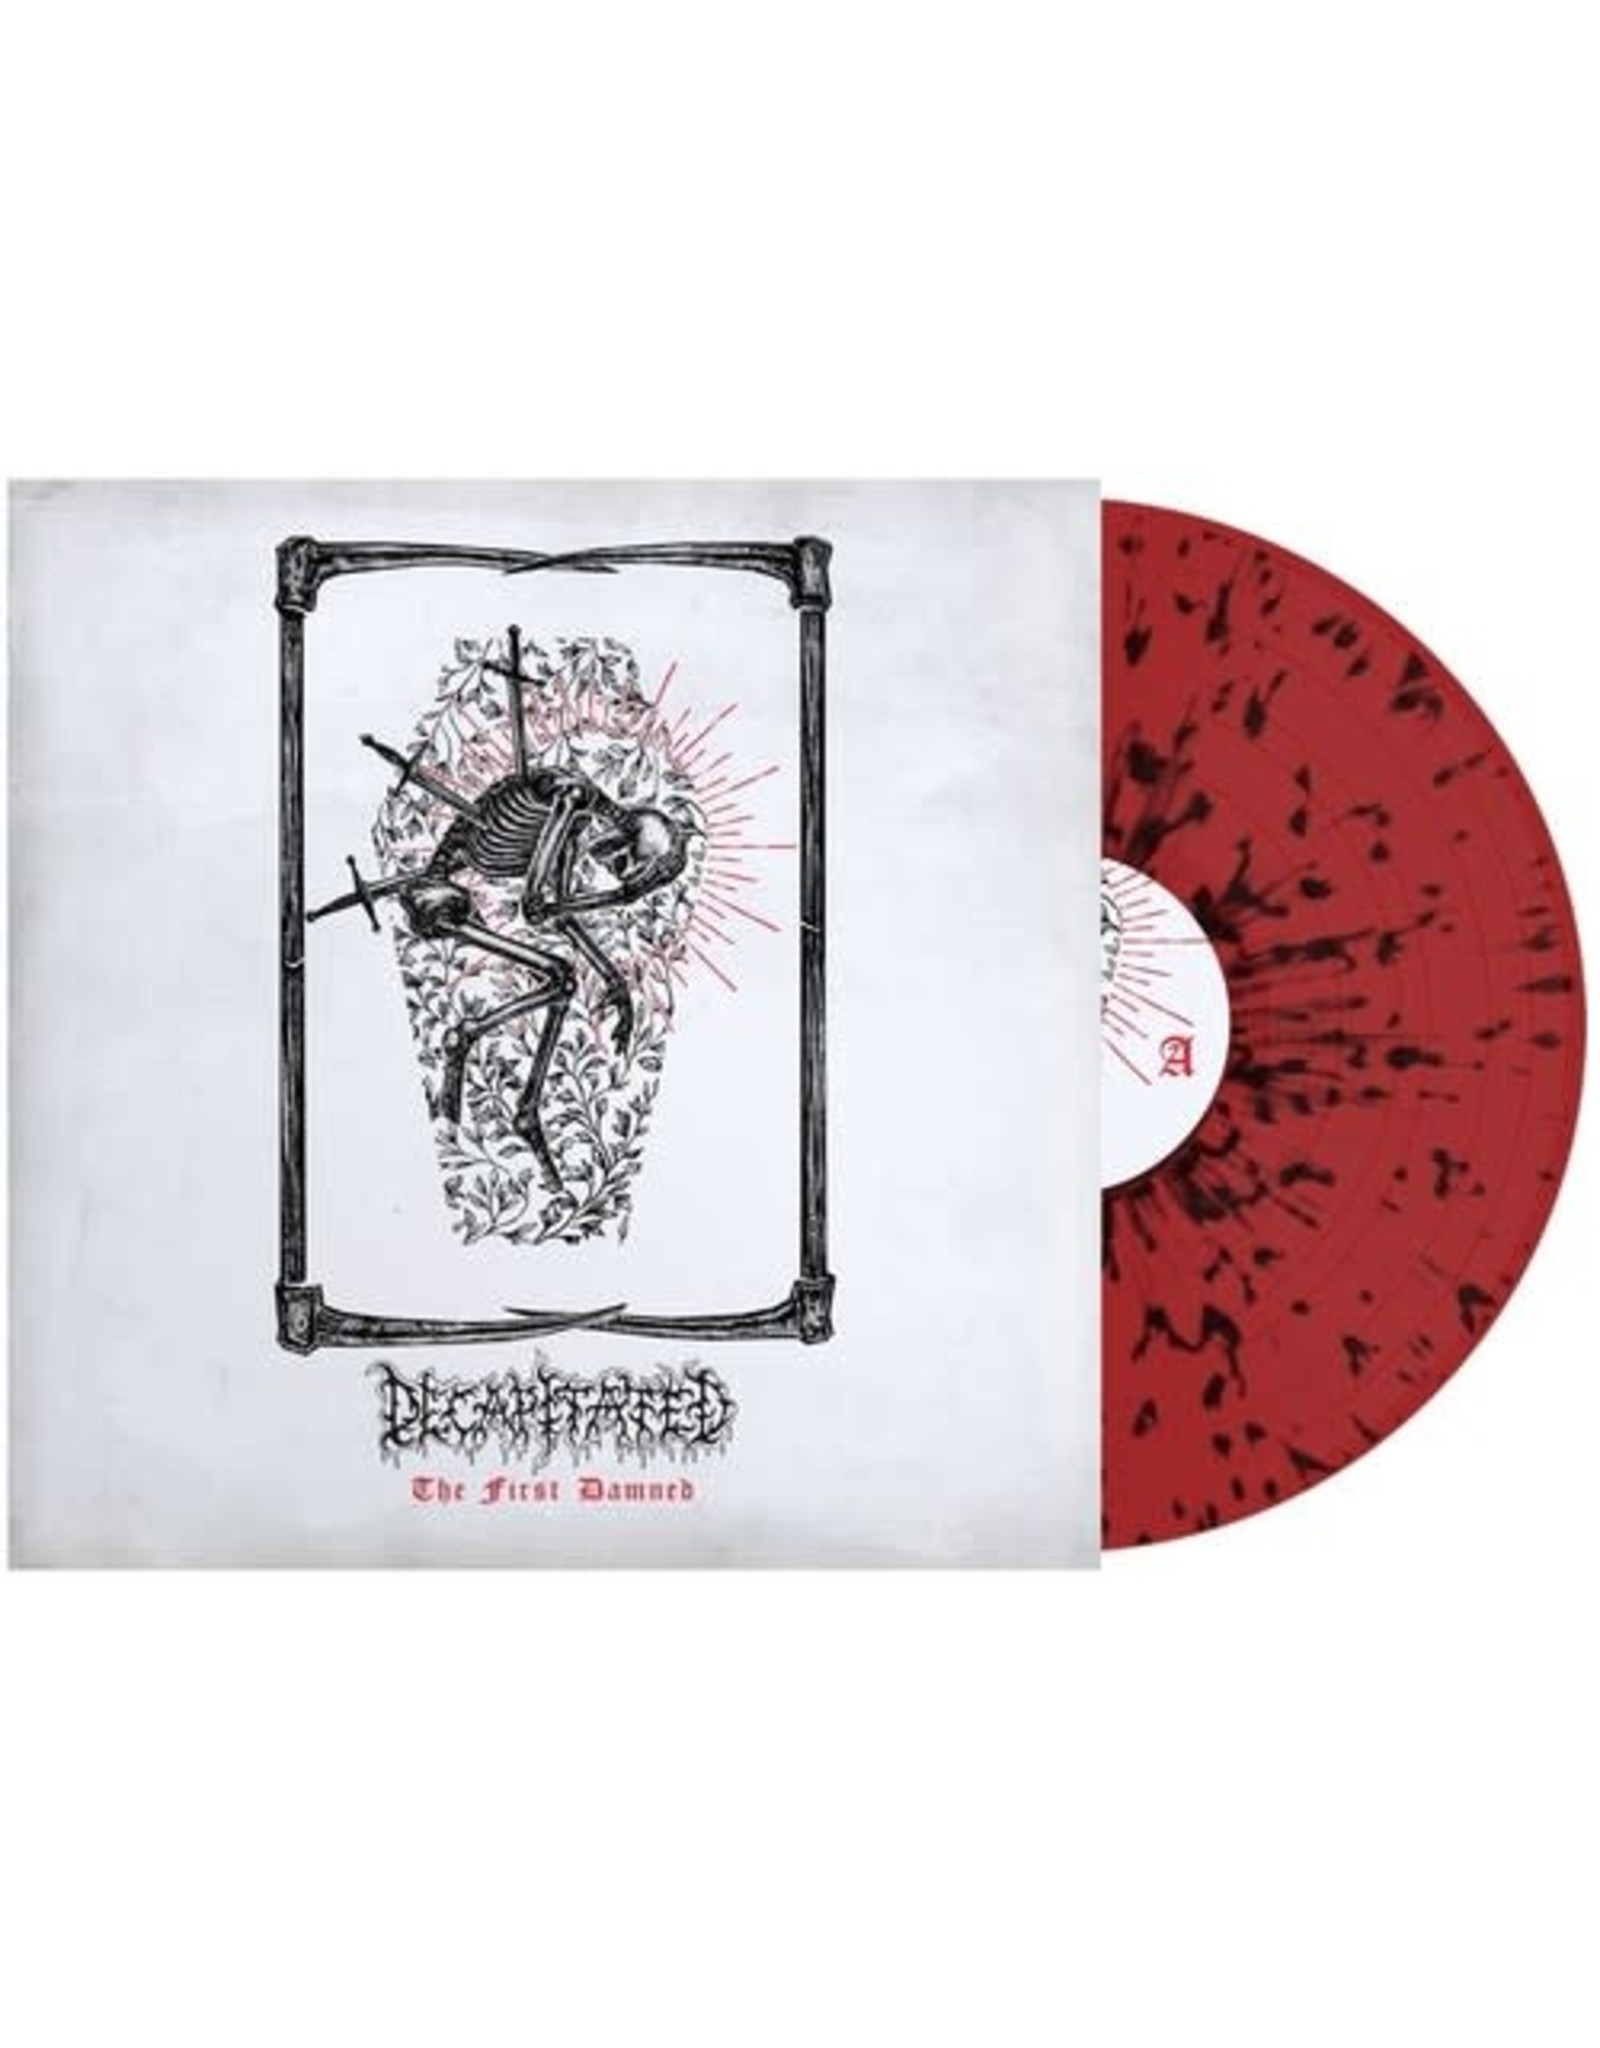 New Vinyl Decapitated - The First Damned (Red & Black Splatter) LP